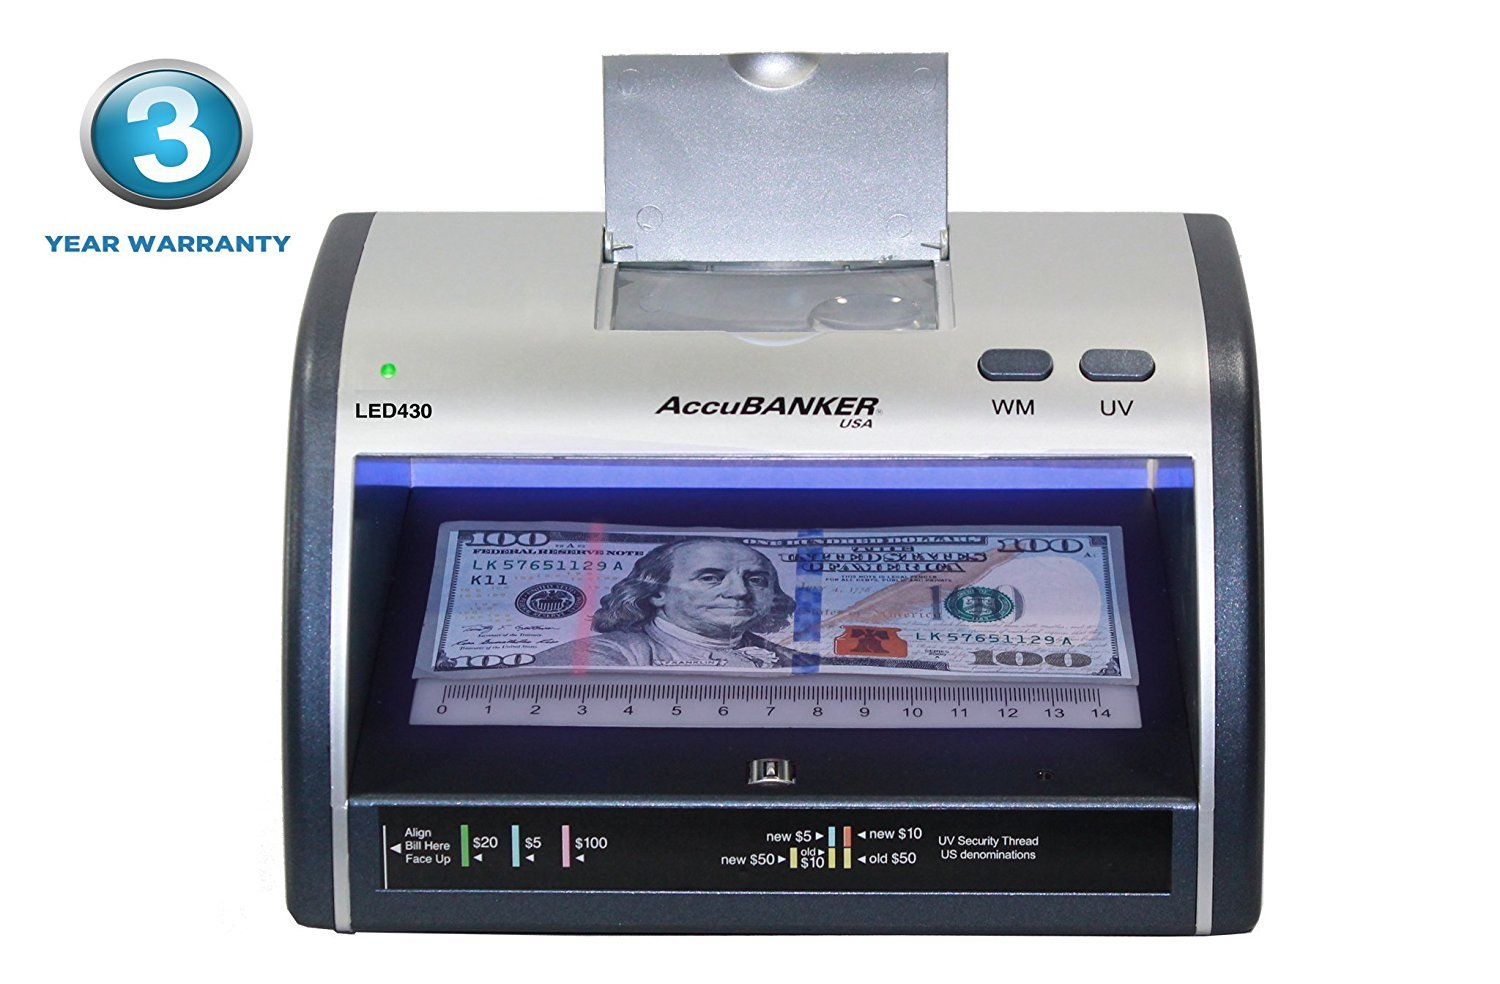 AccuBANKER Cash + Card Counterfeit Detector LED430 Money Checker with Superbright LEDs Ultraviolet, Magnetic & Size Detection ... (LED430) by Accubanker USA